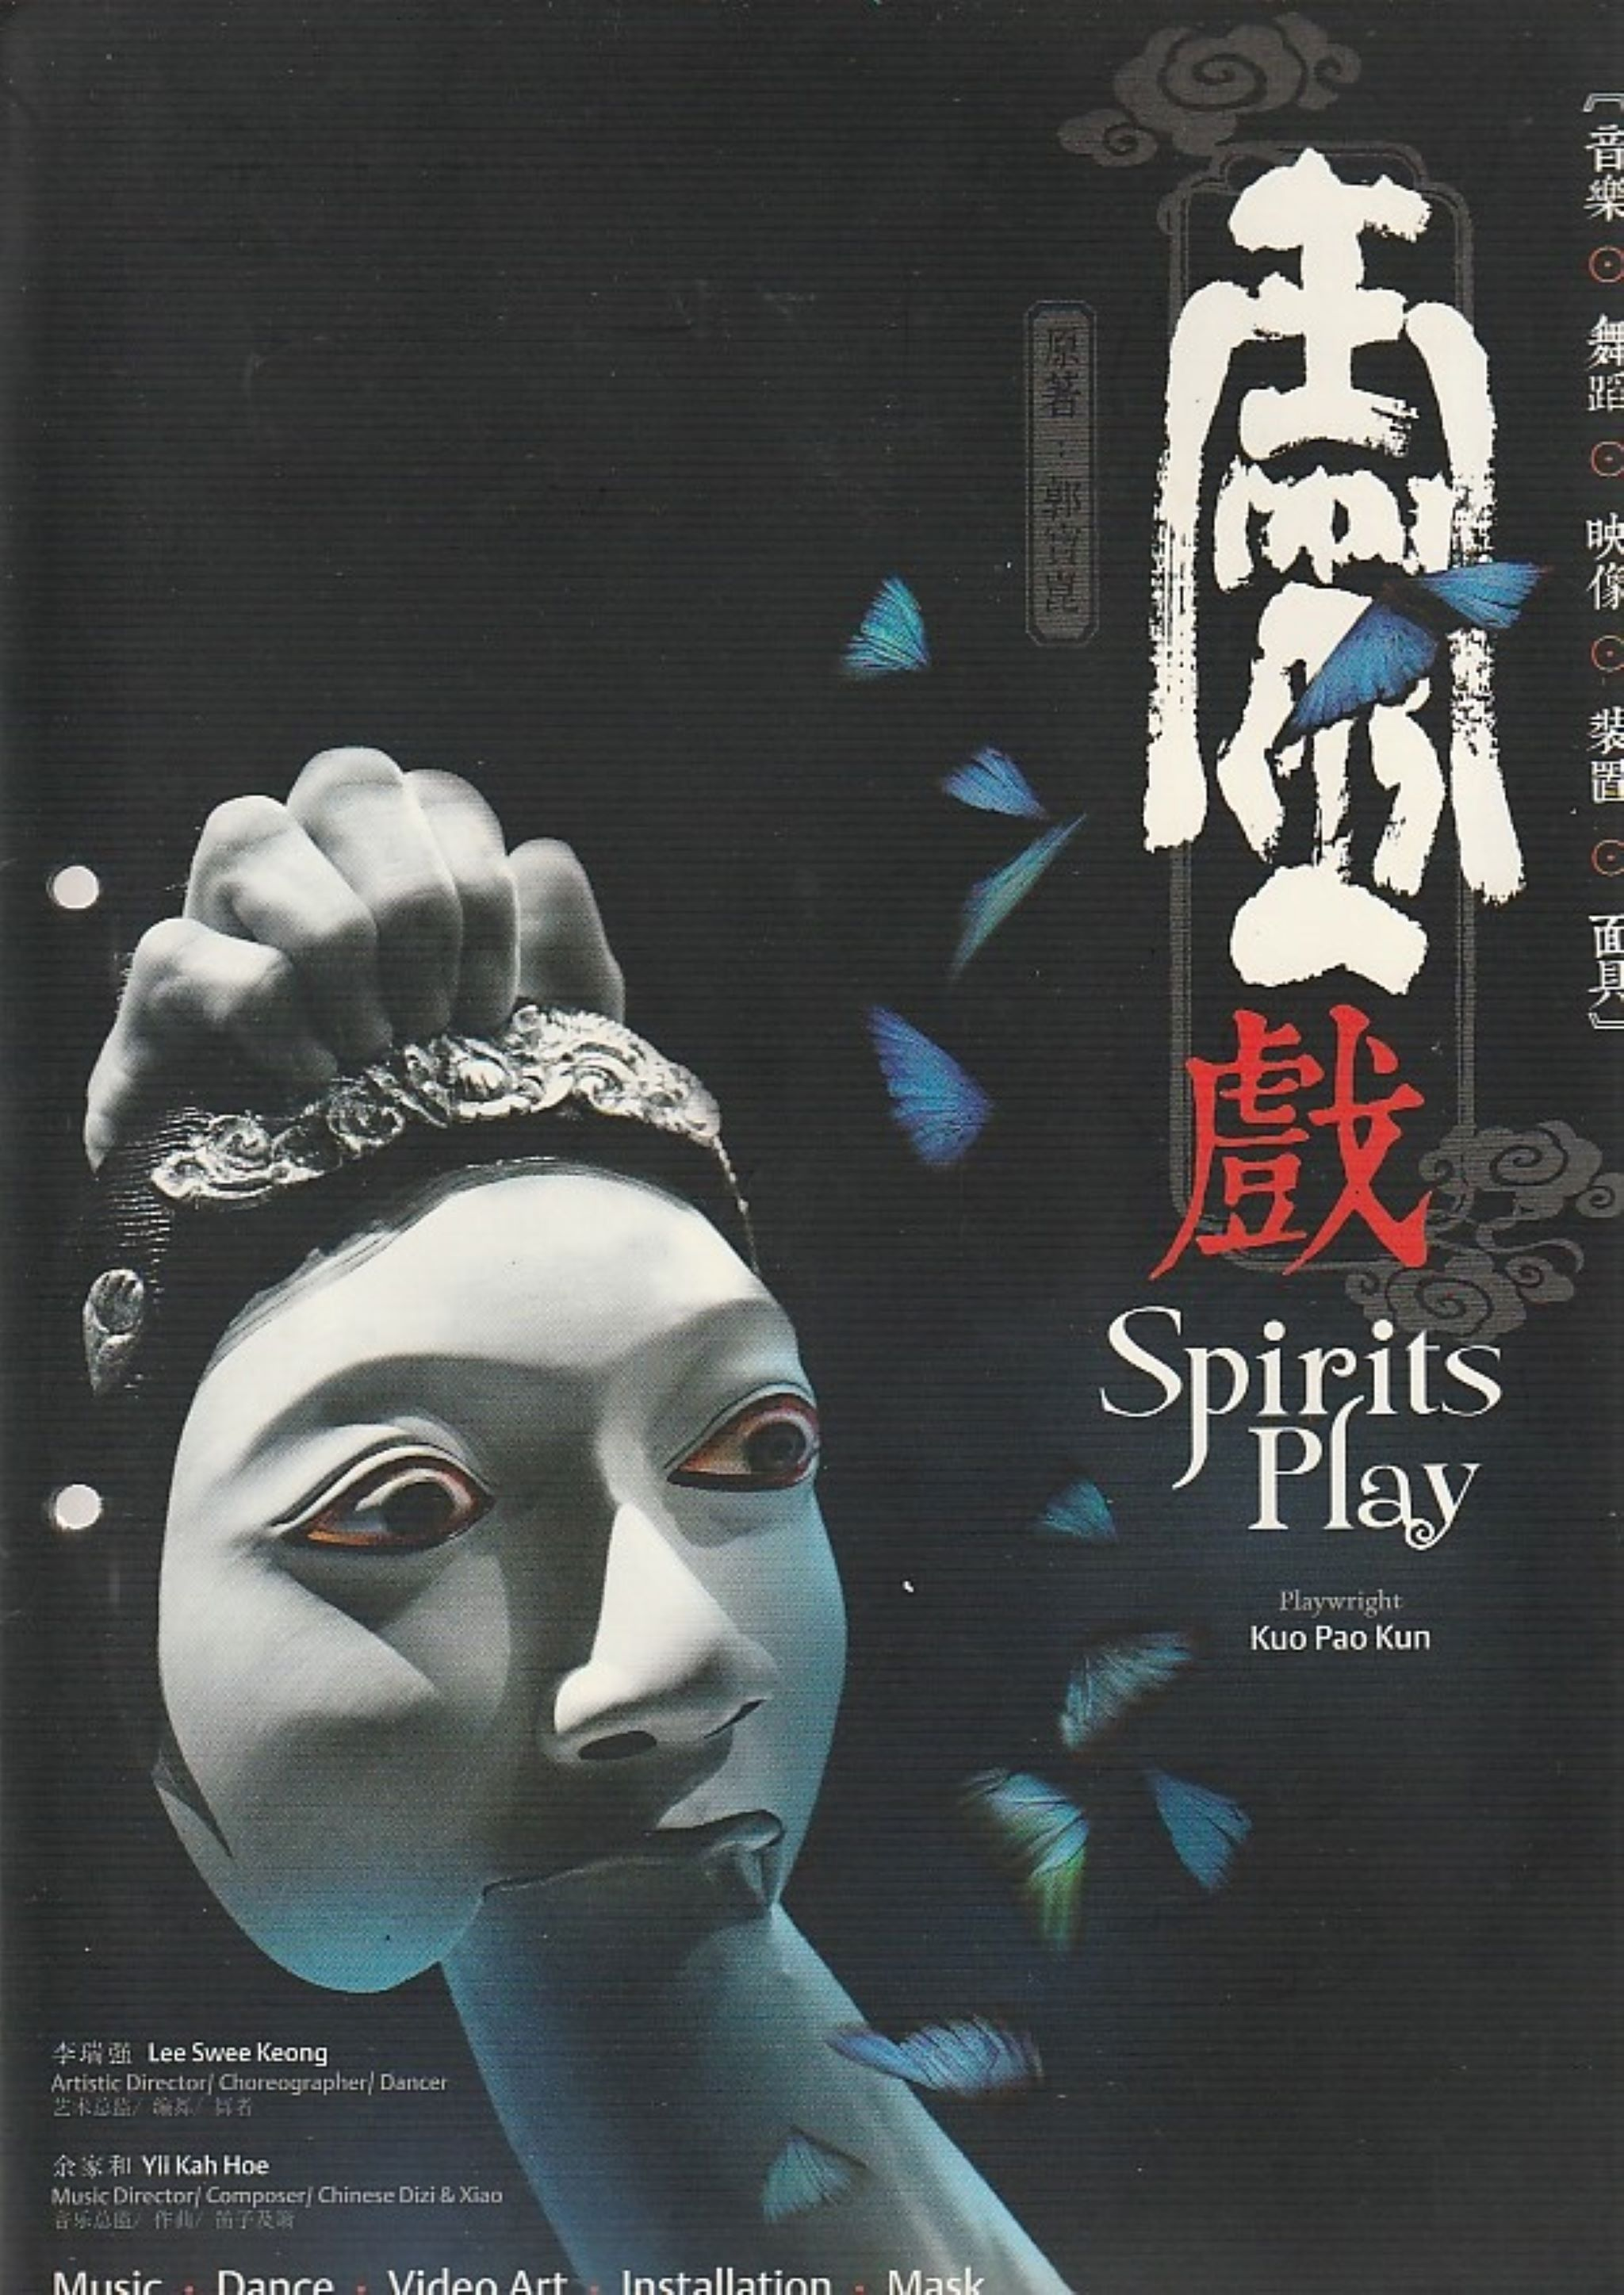 2013 Spirits Plays Cover